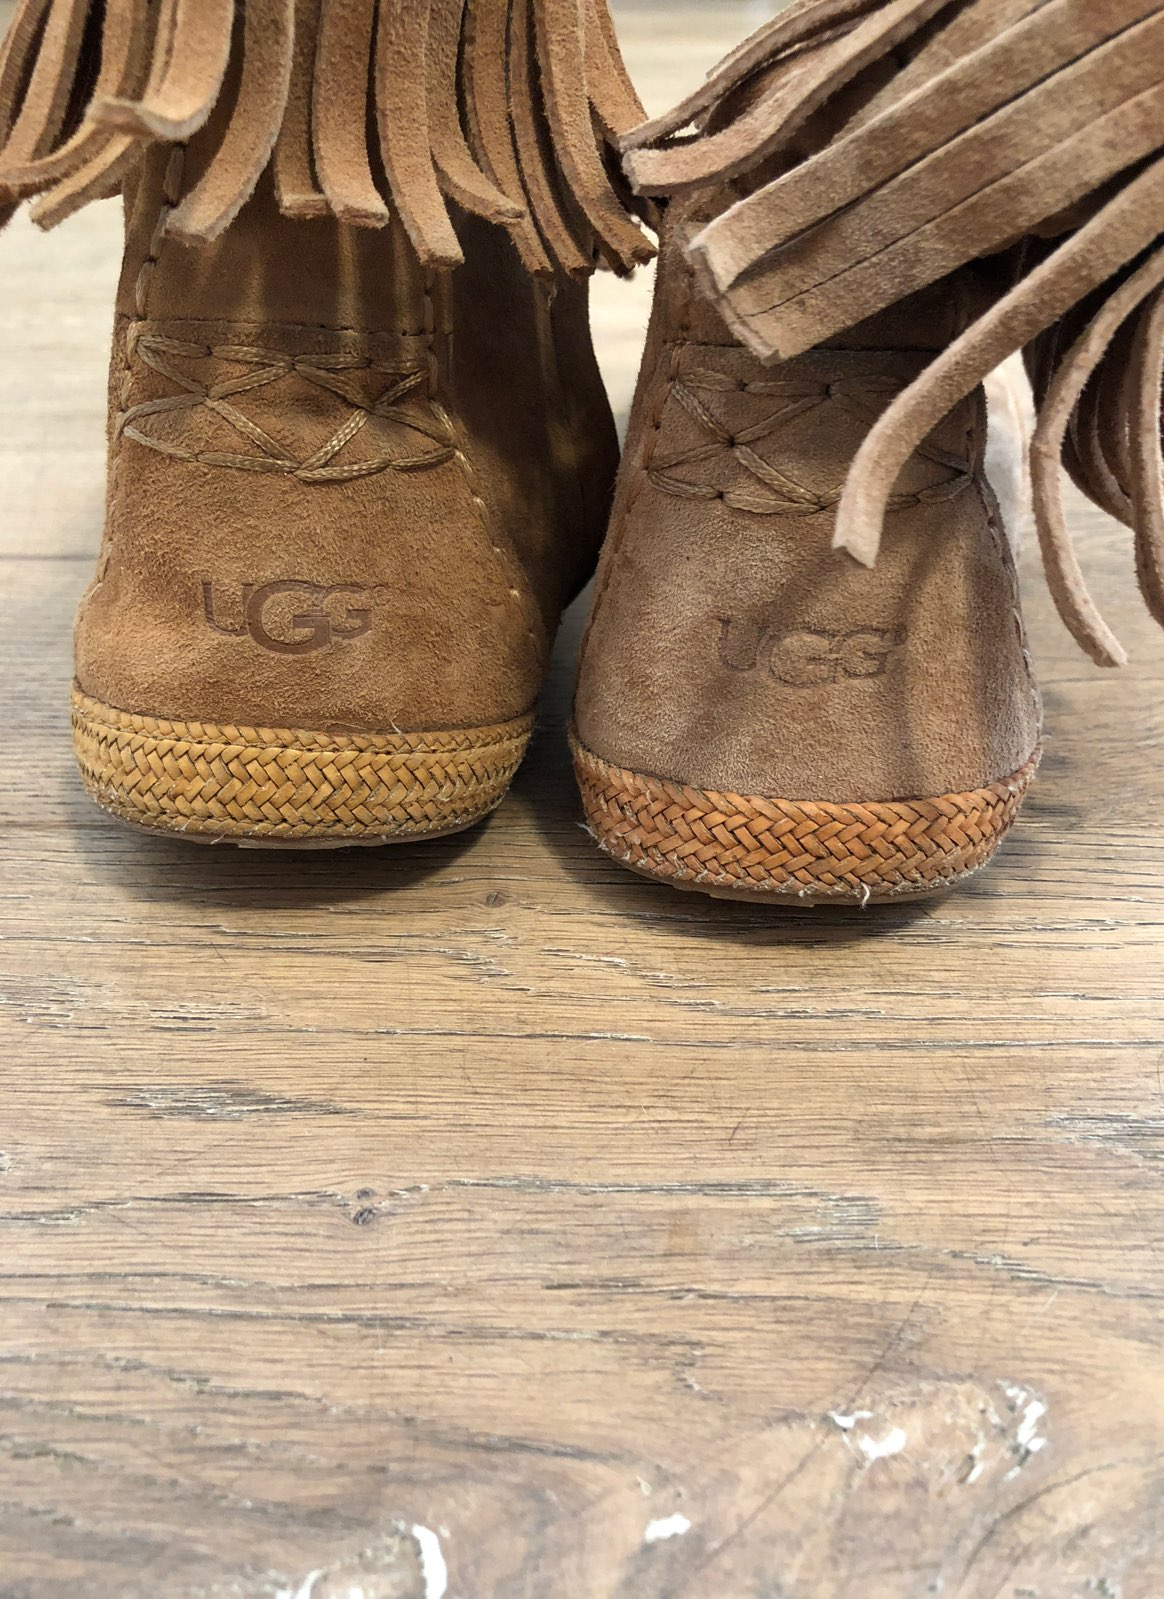 Ugg Moccasin Light Brown, Size 7